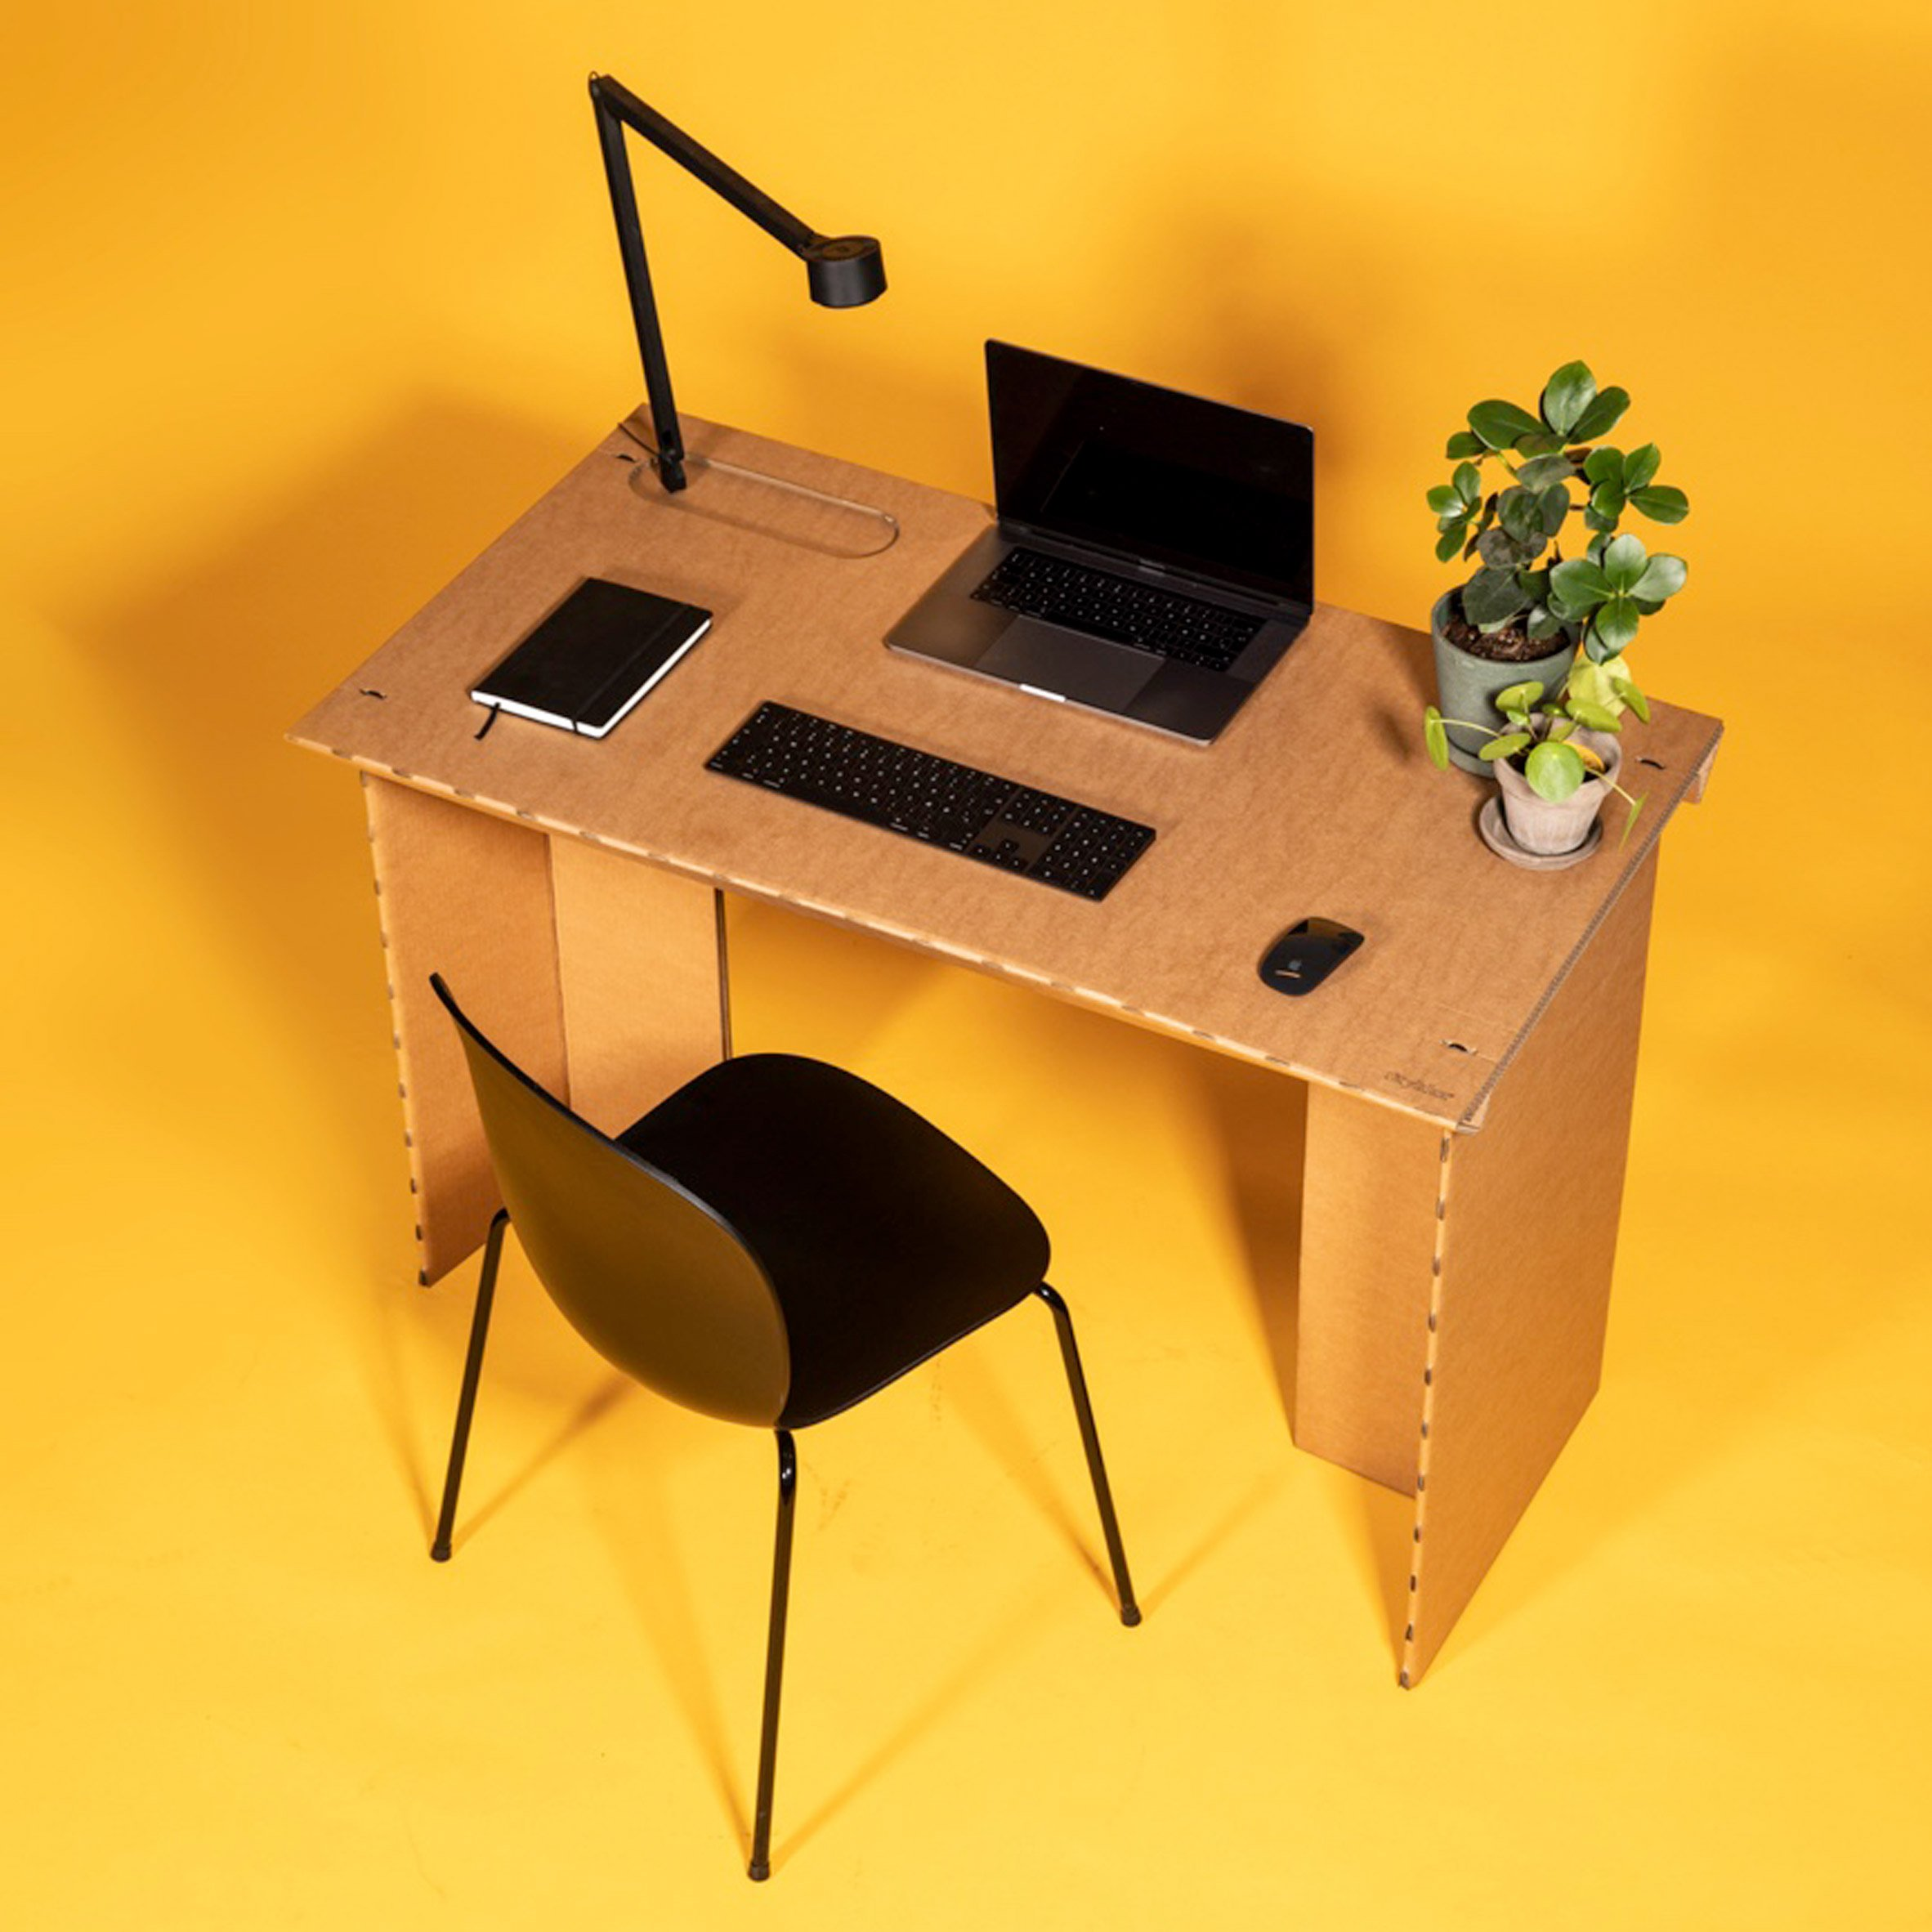 Cardboard Desk By Stykka Helps People Work From Home In Self Isolation